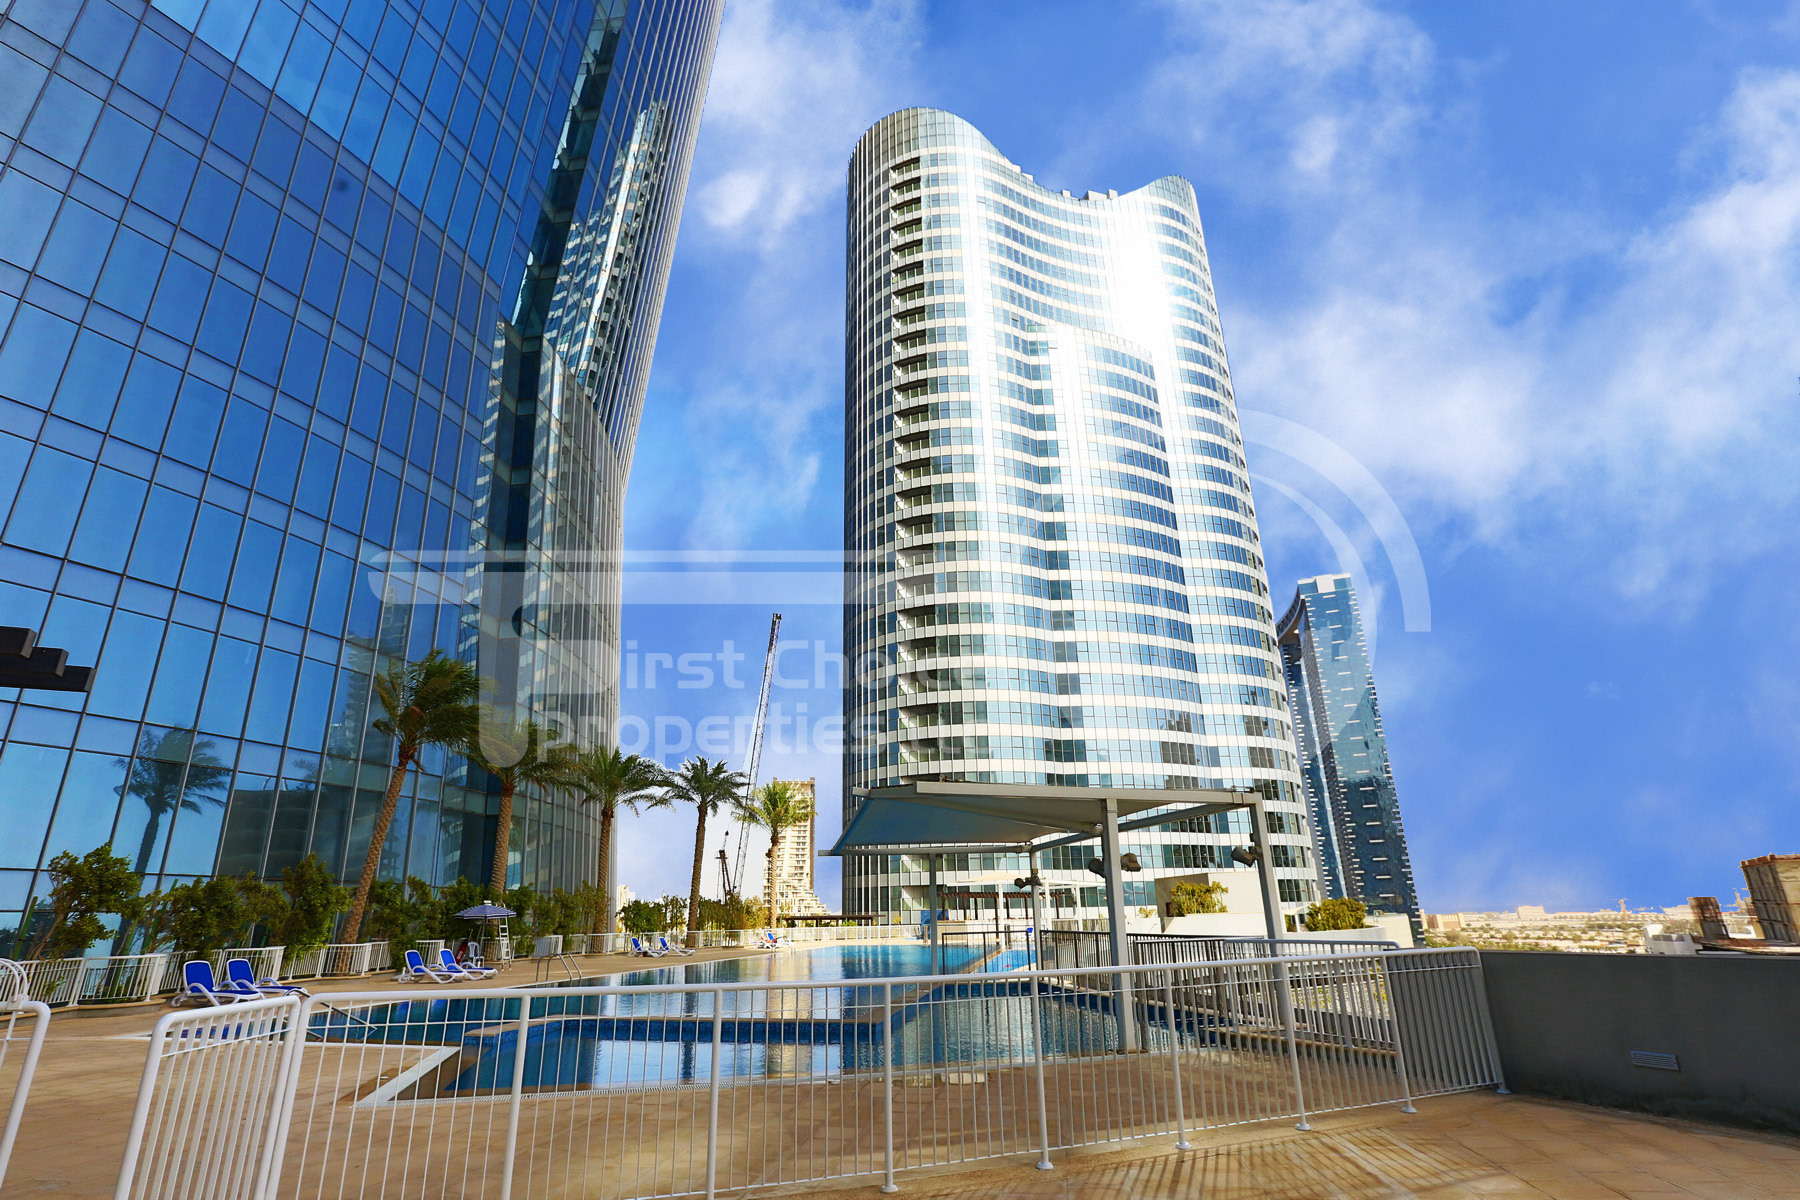 Studio - 1BR - 2BR - 3BR Apartment - Abu Dhabi - UAE - Al Reem Island - City of Lights - C2 Building - C3 Building - Outside View (14).JPG